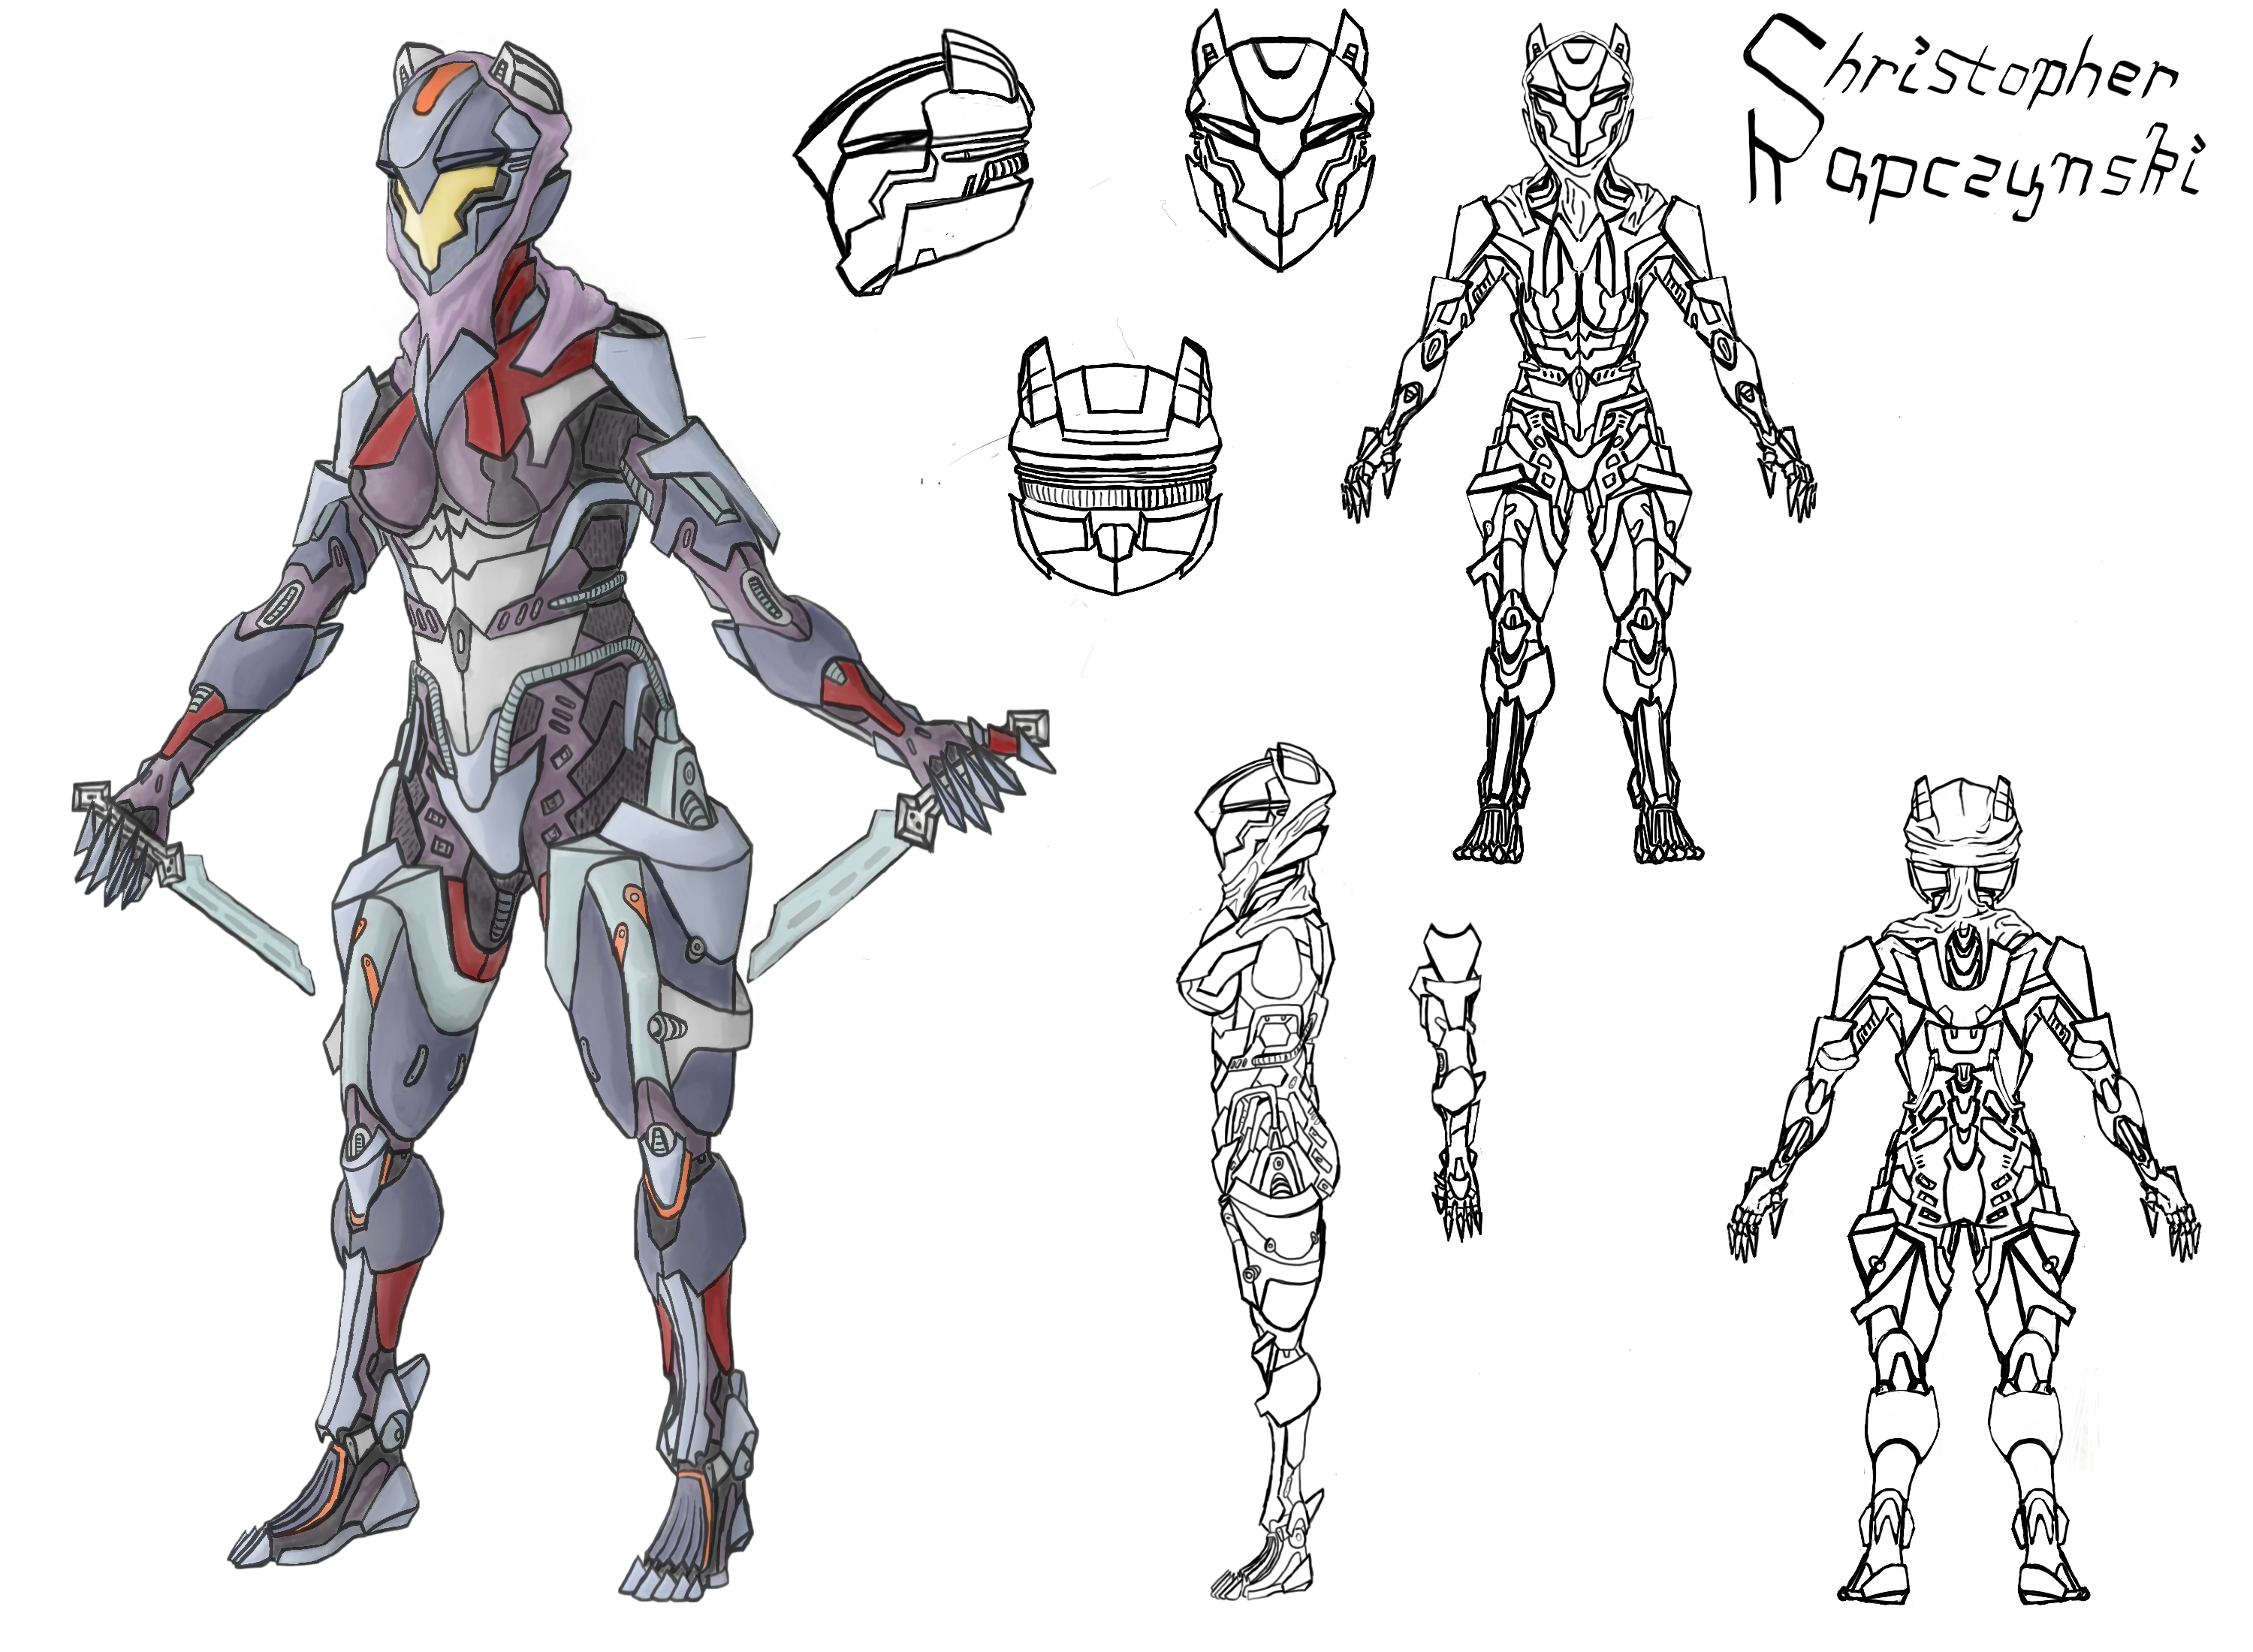 Character Design And Concept Art : Feora armor design character concept art by luigipunch